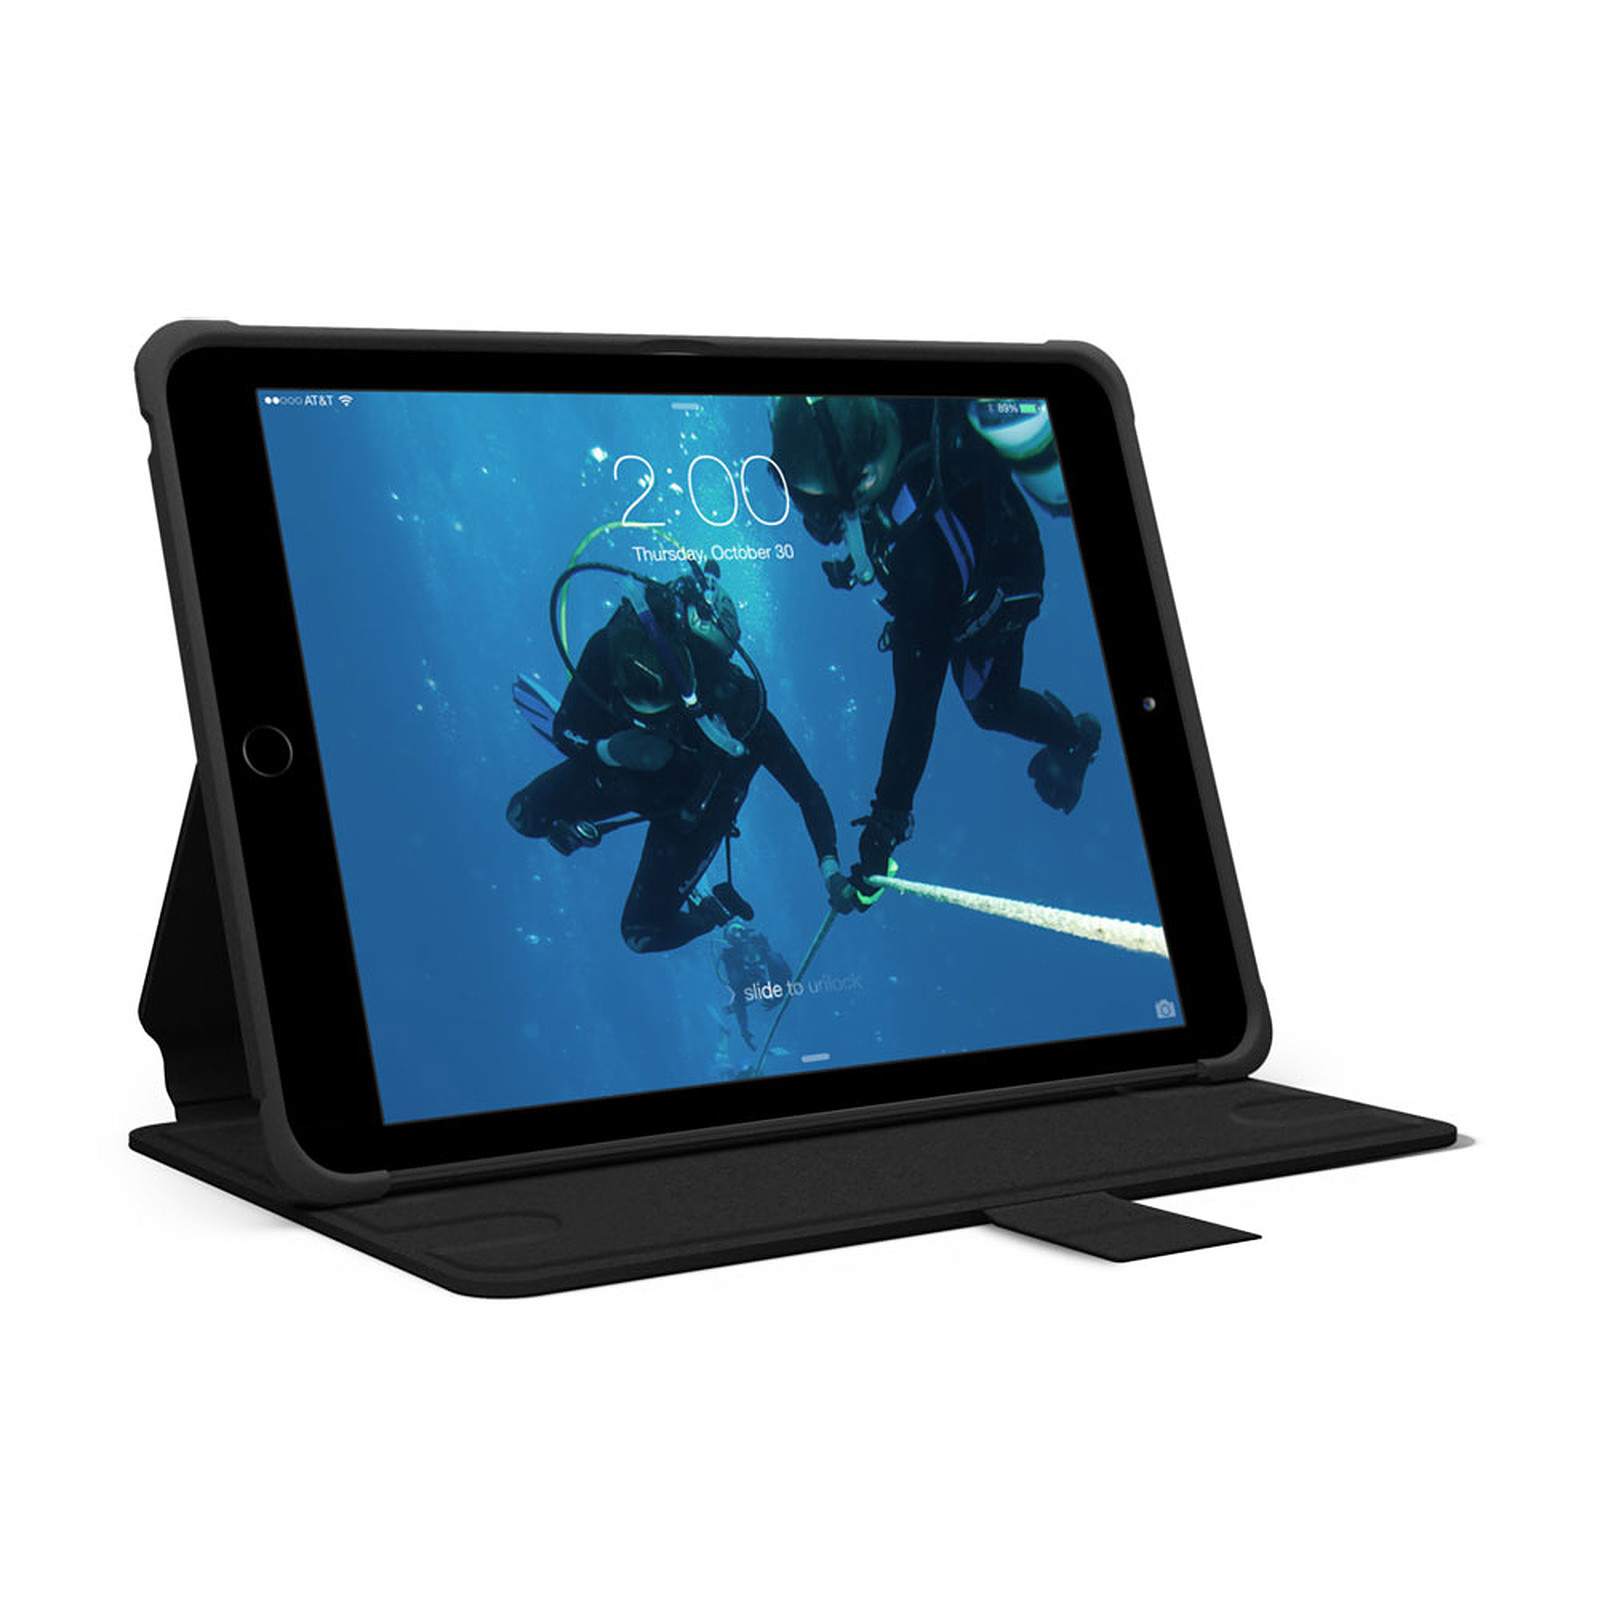 Etui Tablette Uag Protection Ipad Air 2 Noir Etui Tablette Uag Sur